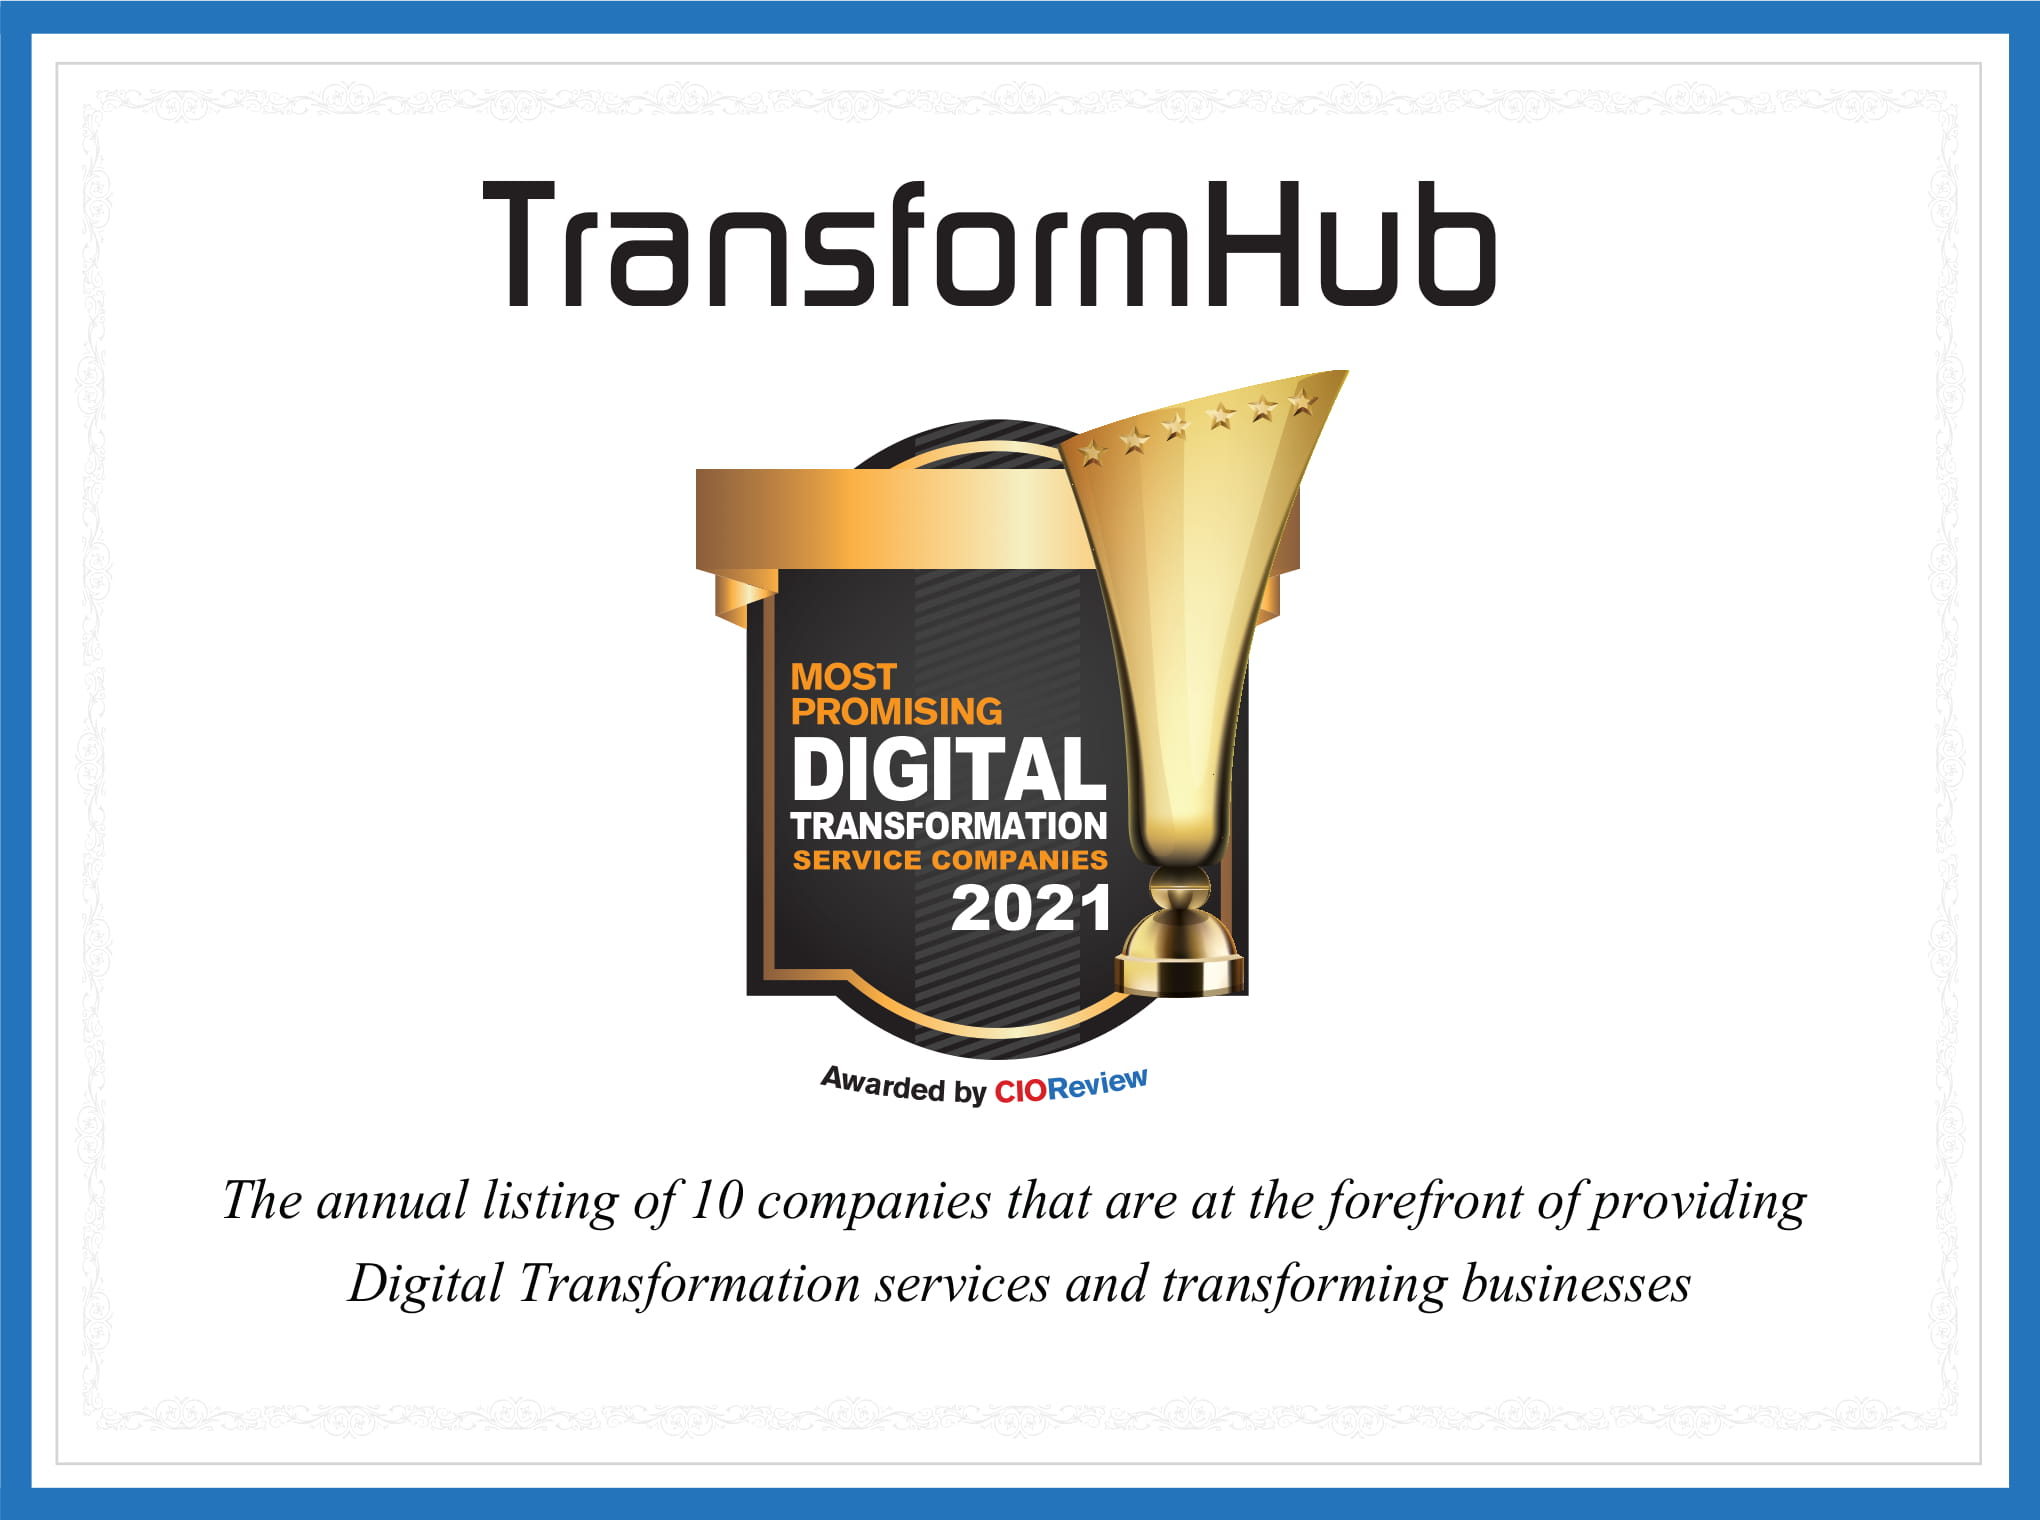 Most Promising Digital Transformation Service Companies 2021 by CIO Review